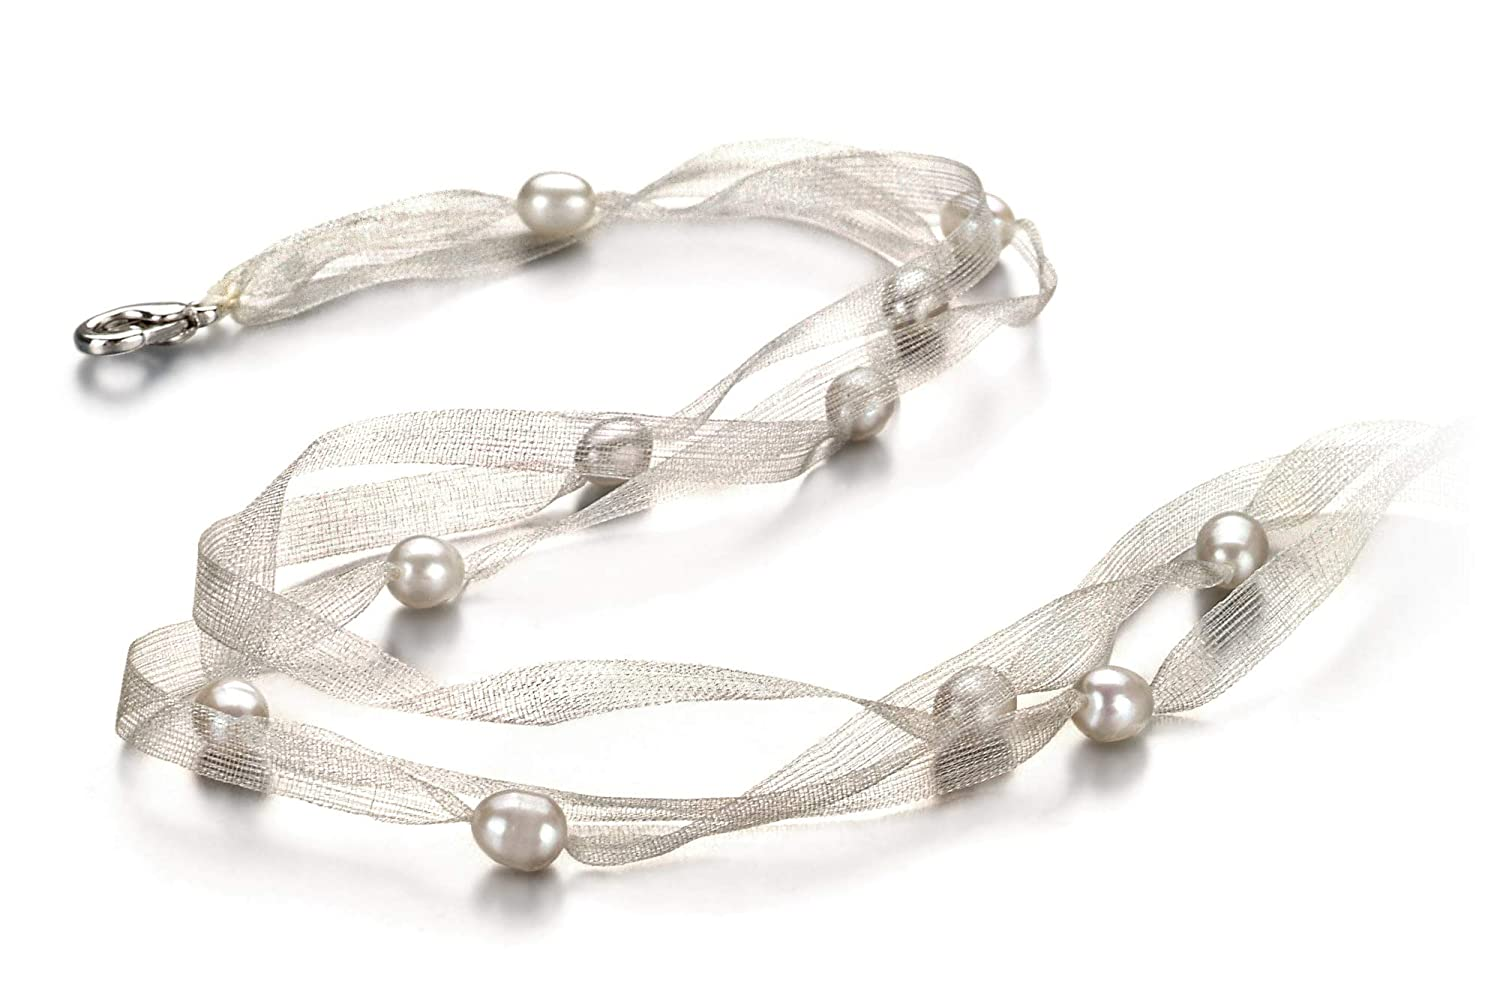 Jasmine White 5-6mm A Quality Freshwater Cultured Pearl Necklace for Women-18 in Princess Length